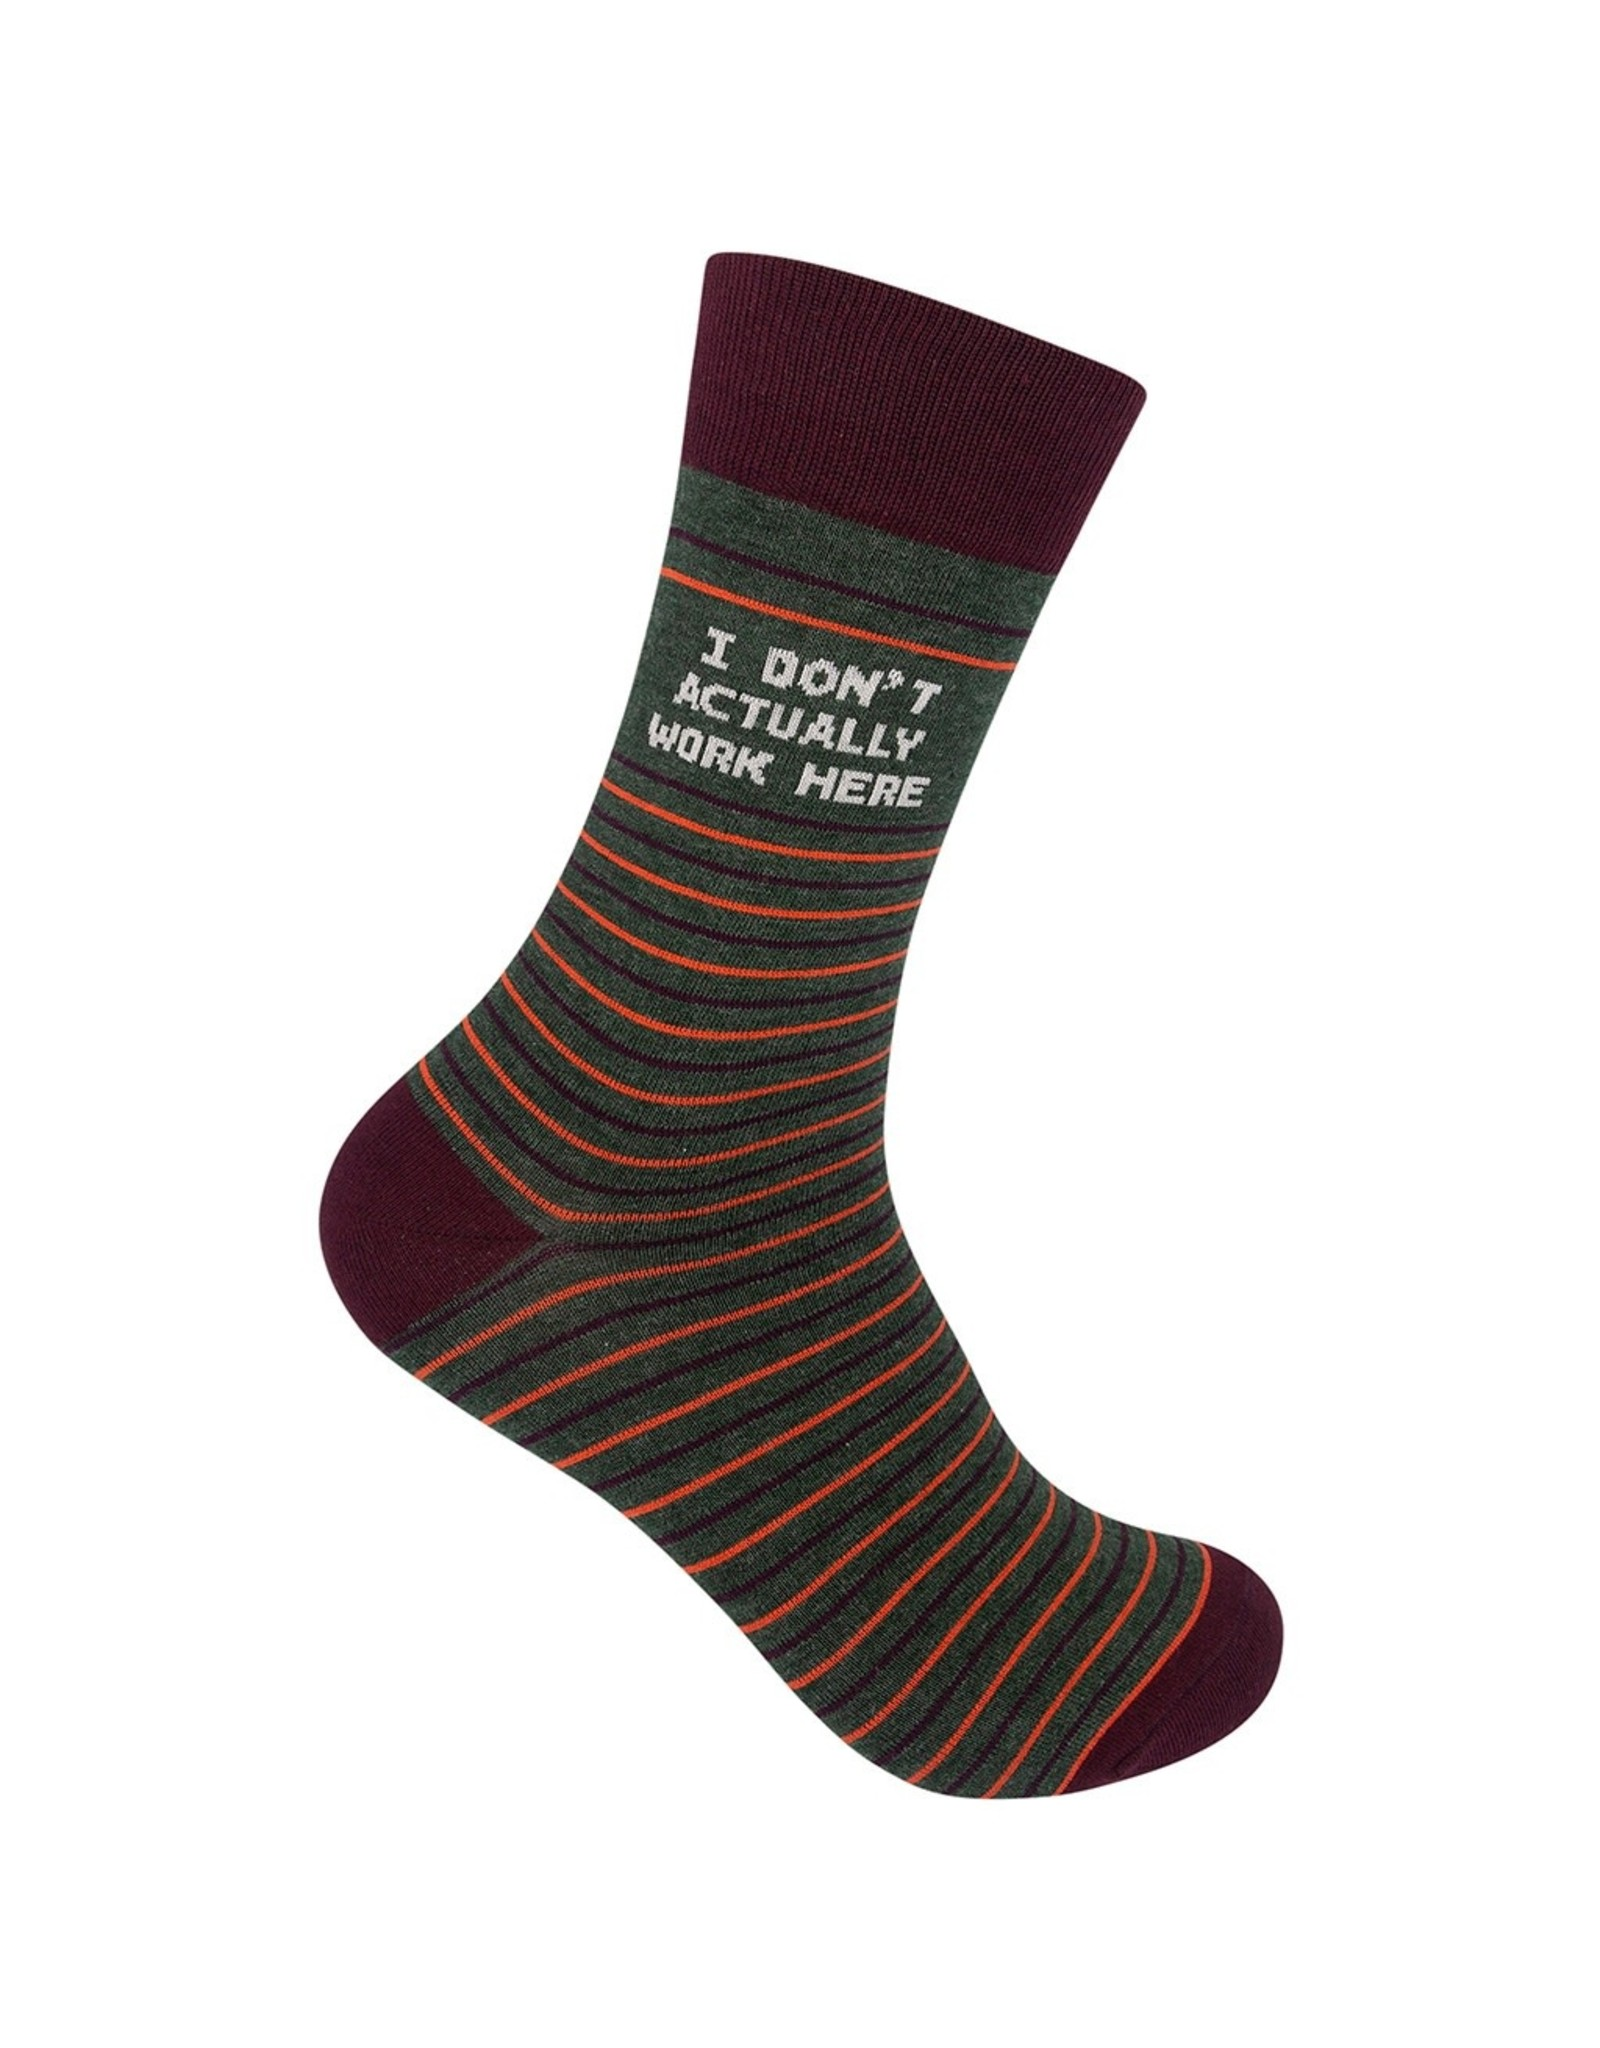 Socks (Unisex) - I Don't Actually Work Here